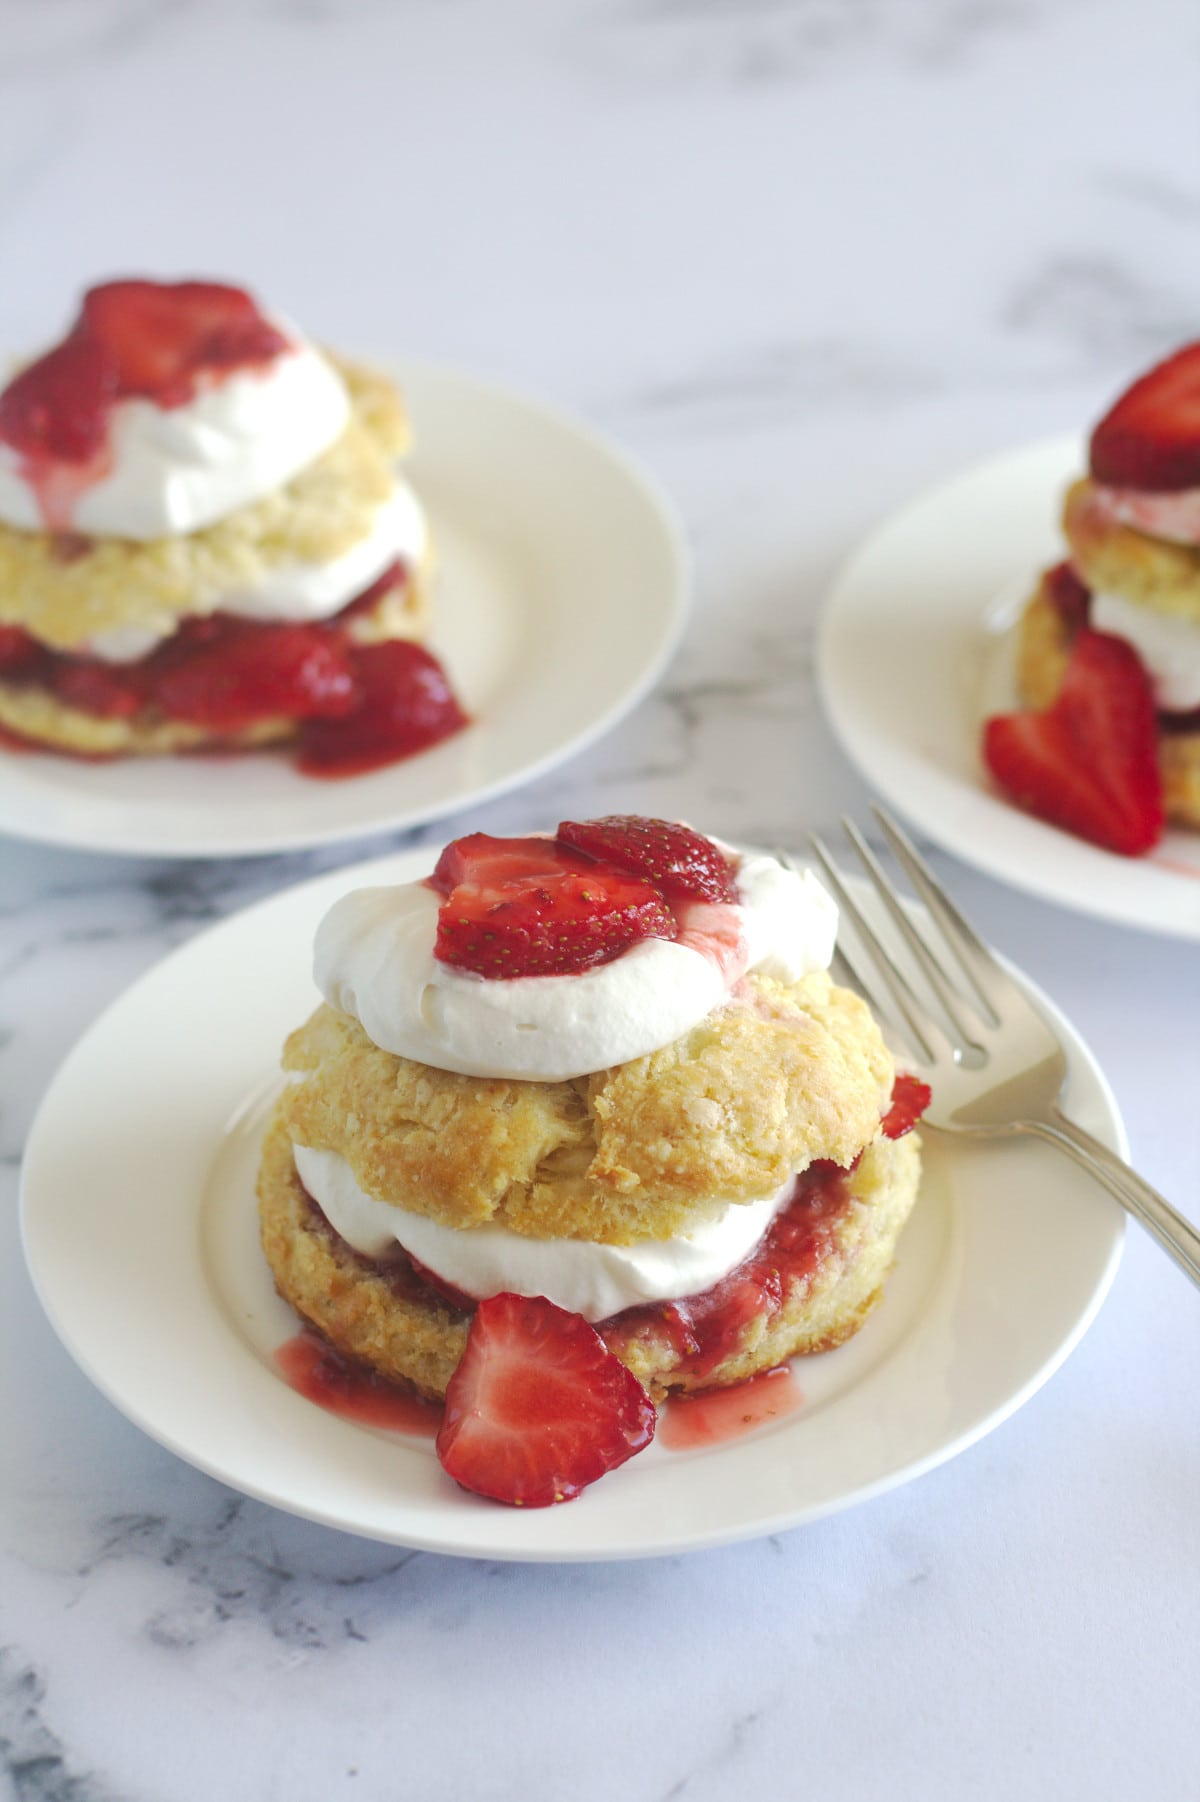 A strawberry shortcake on a plate with a fork.  Other plated strawberry shortcakes are in the background.